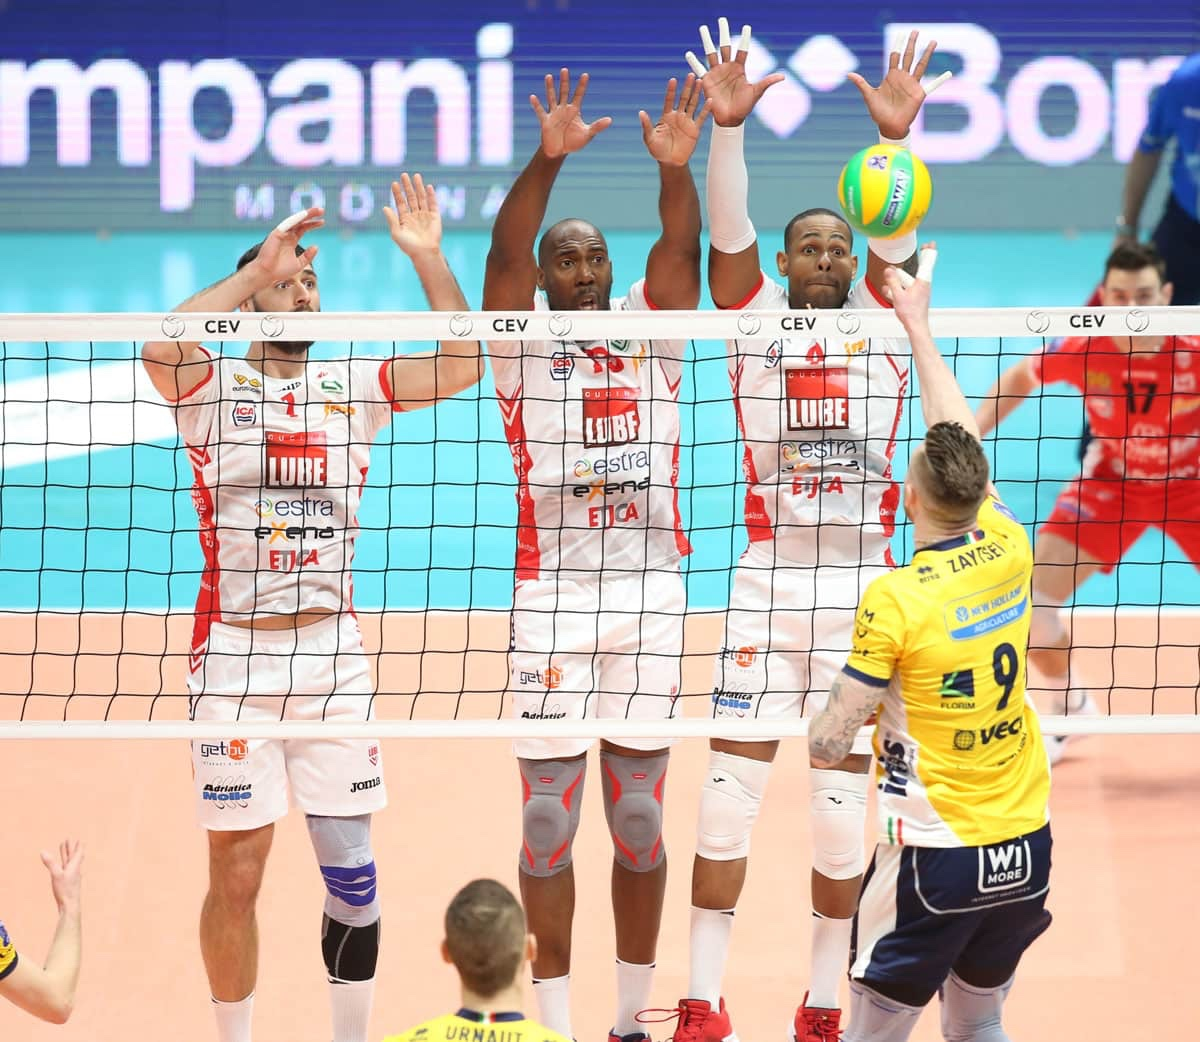 #ChampionsLeague: Tours down Arkas Izmir at tie break, Perugia unstoppable, Lube end Modena's road to the quarterfinals, and the others of Round 4.